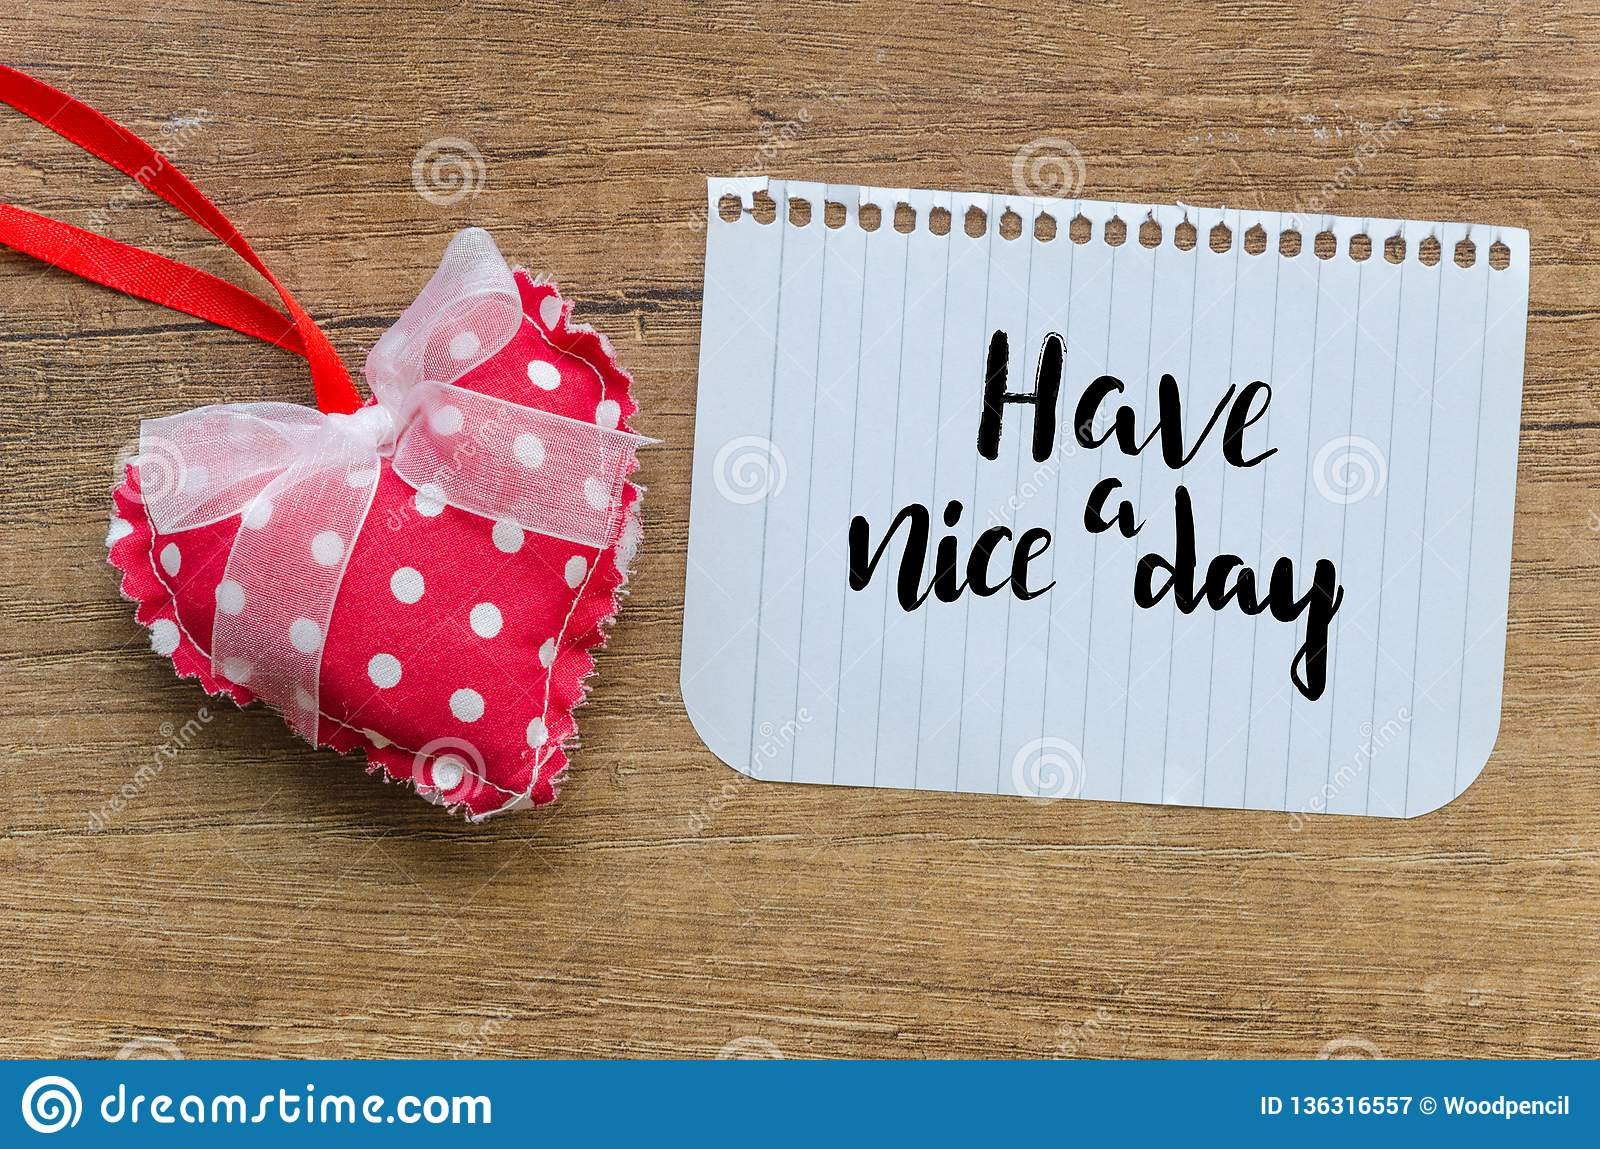 Have A Nice Day Message With Handmade Red Heart On Wooden